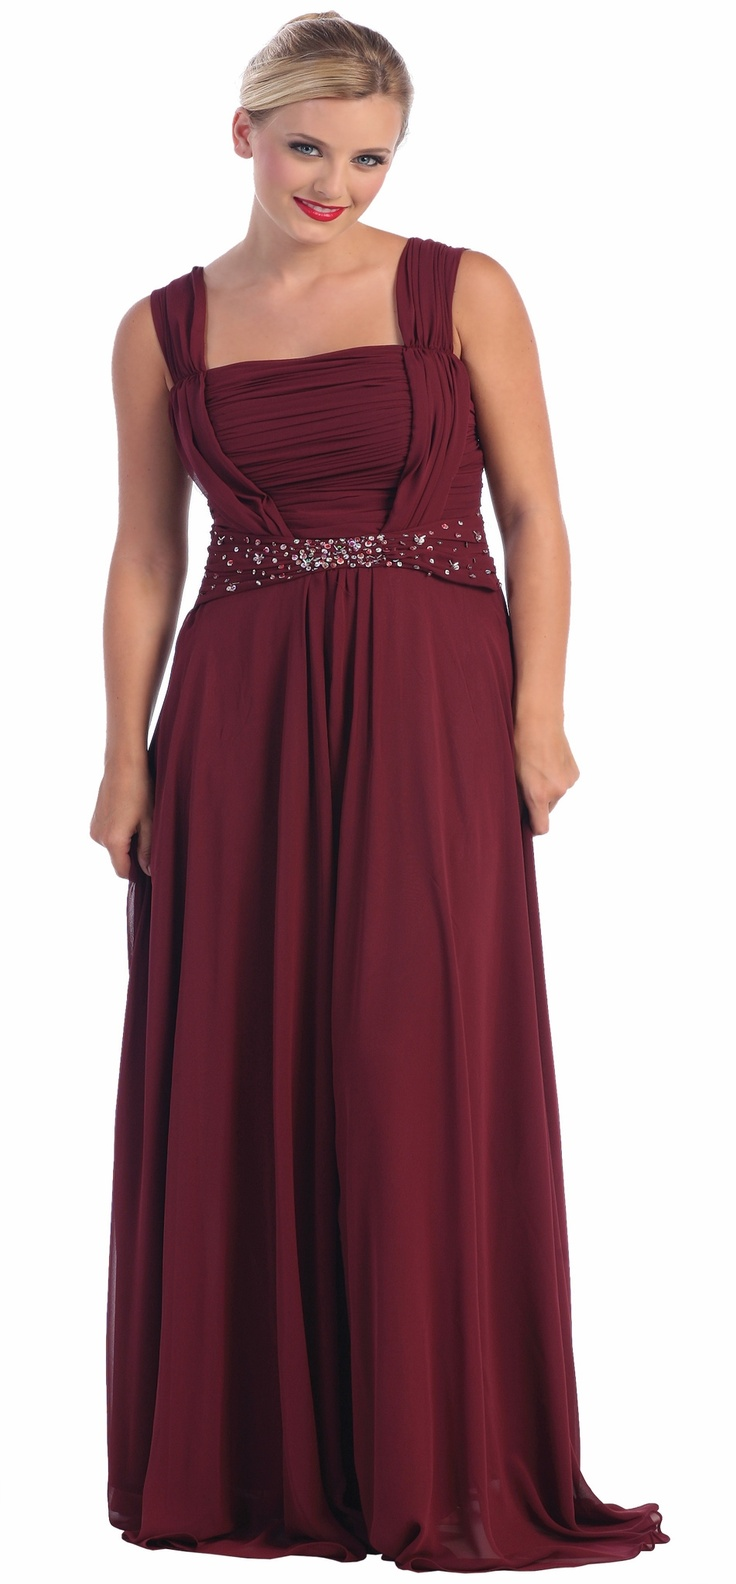 17 best images about mother of the groom dresses on for Burgundy wedding dresses plus size